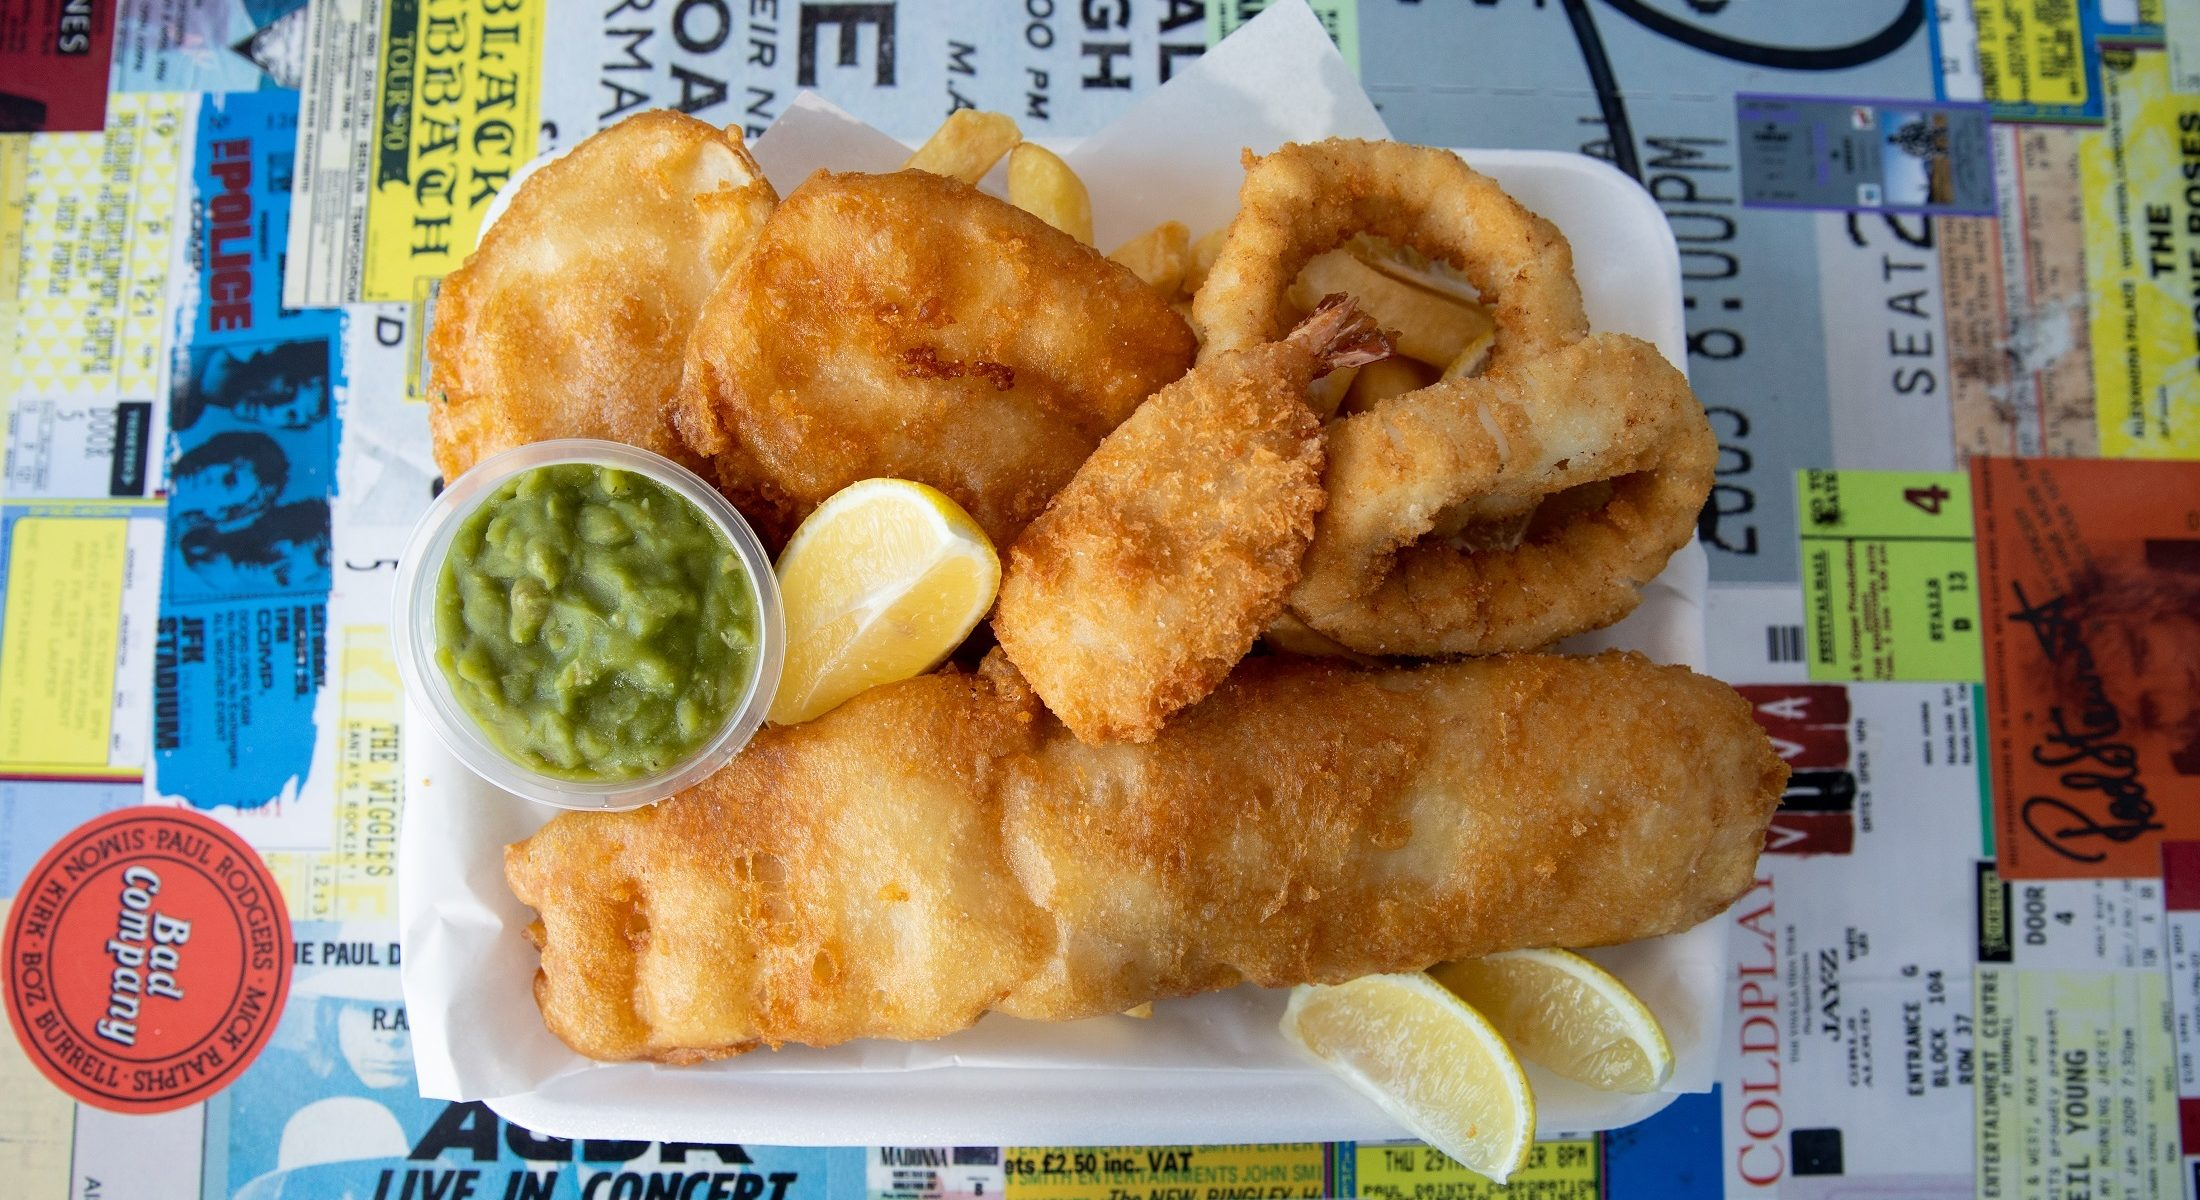 Yabbey Road Best Fish And Chips Brisbane Redcliffe Visit Moreton Bay Region